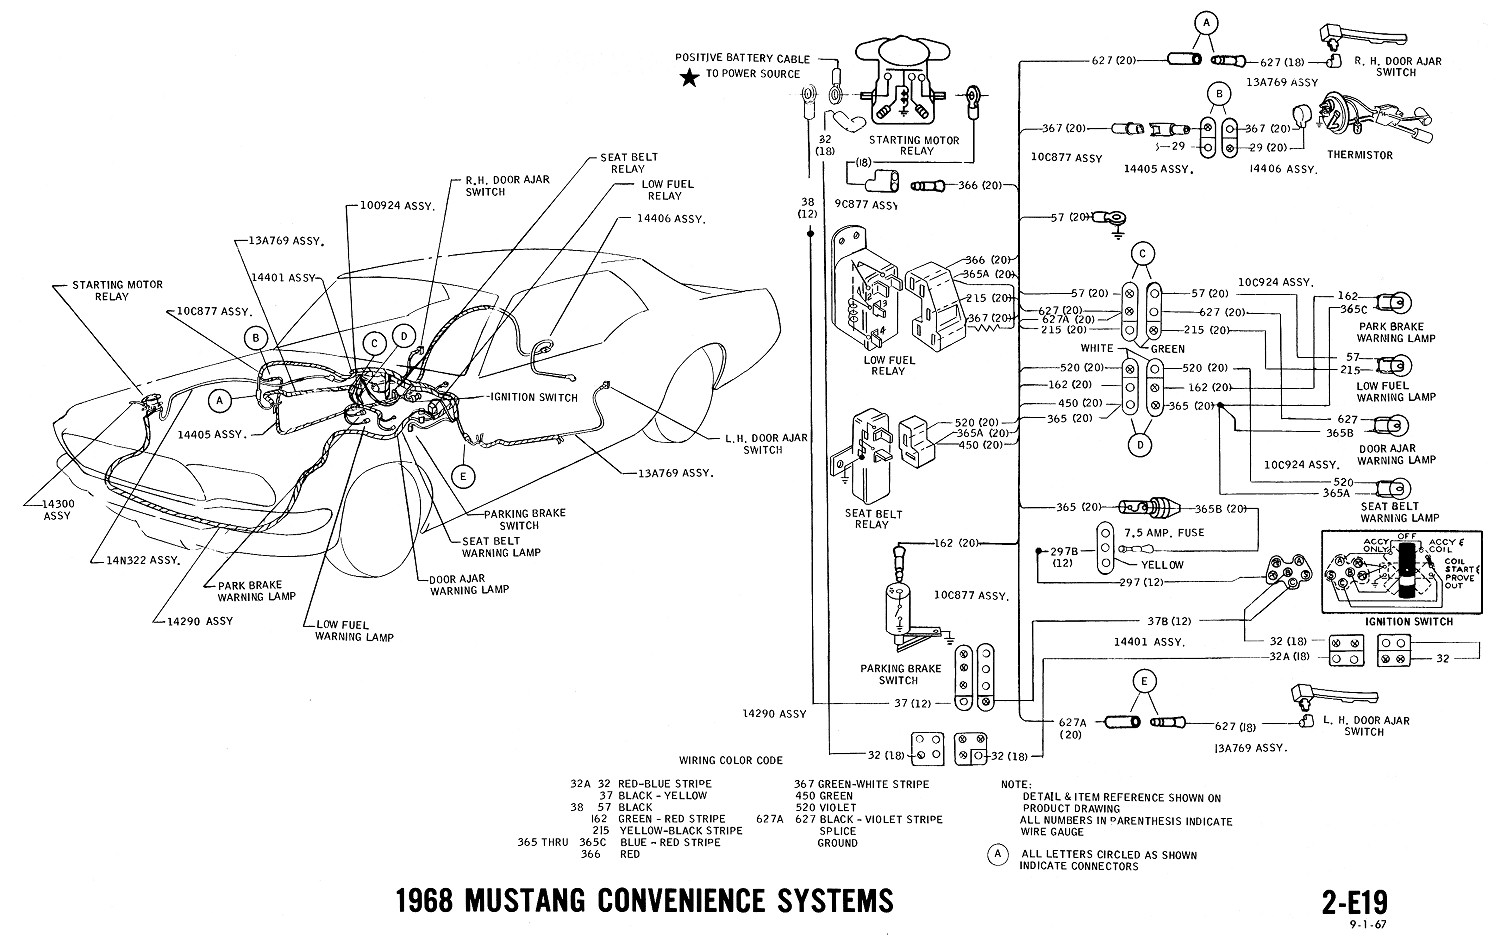 E19 1968 mustang wiring diagrams evolving software wiring diagram 1968 ford mustang coupe at bayanpartner.co